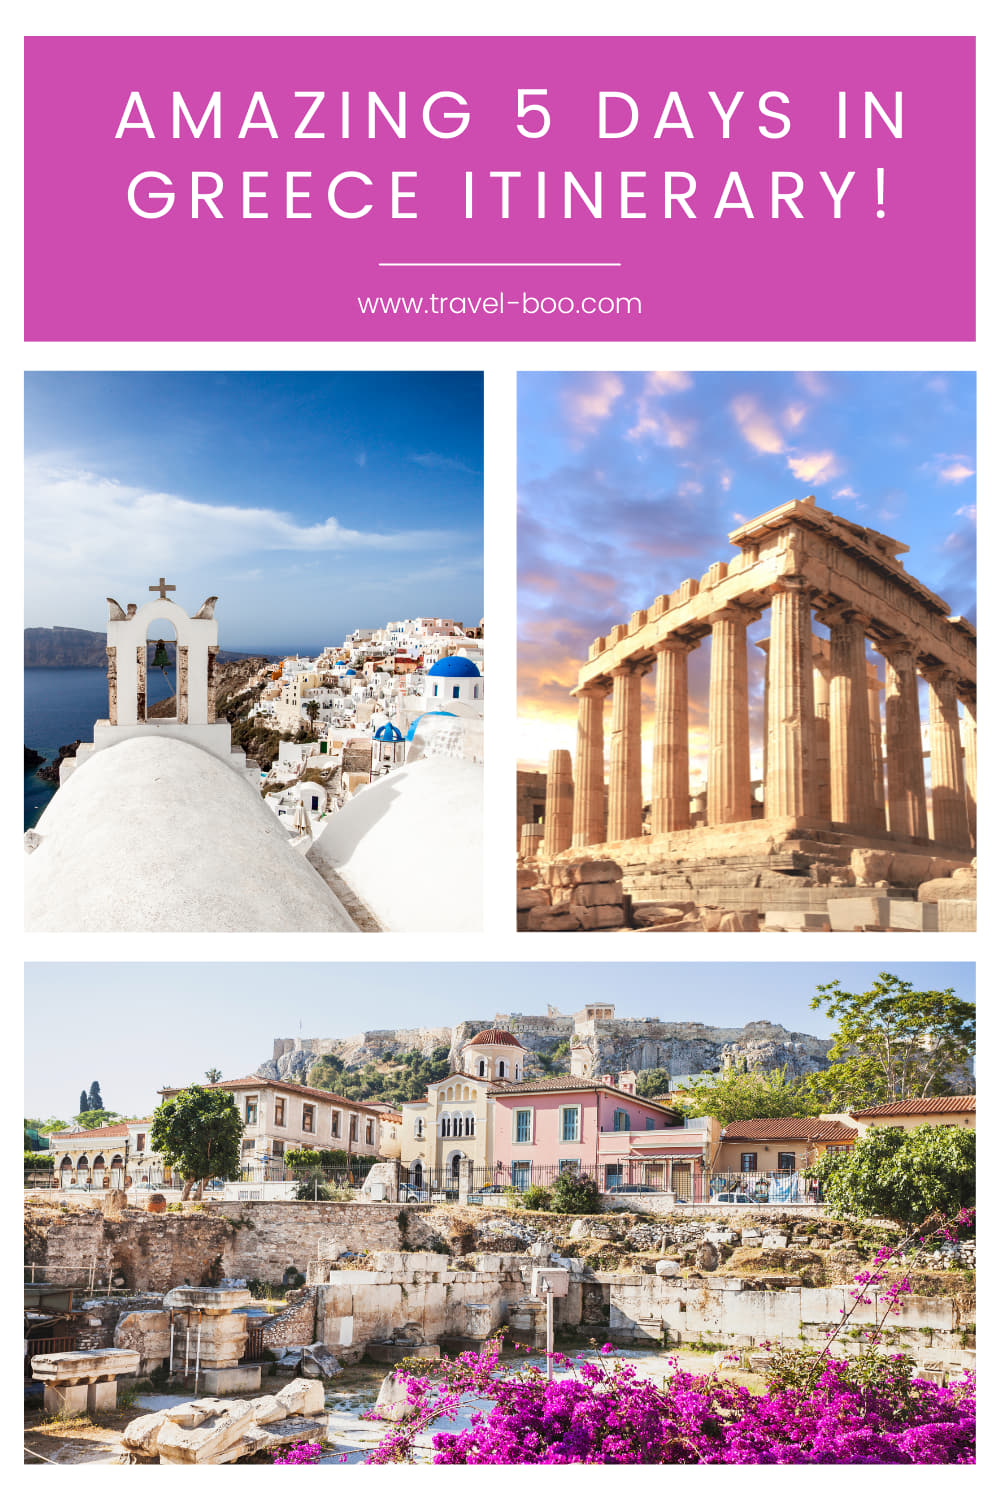 Amazing 5 Days in Greece Itinerary! Greece Travel Itinerary, Visiting Greece, Greece Vacations, Greek Itinerary, Greek Travel Islands.